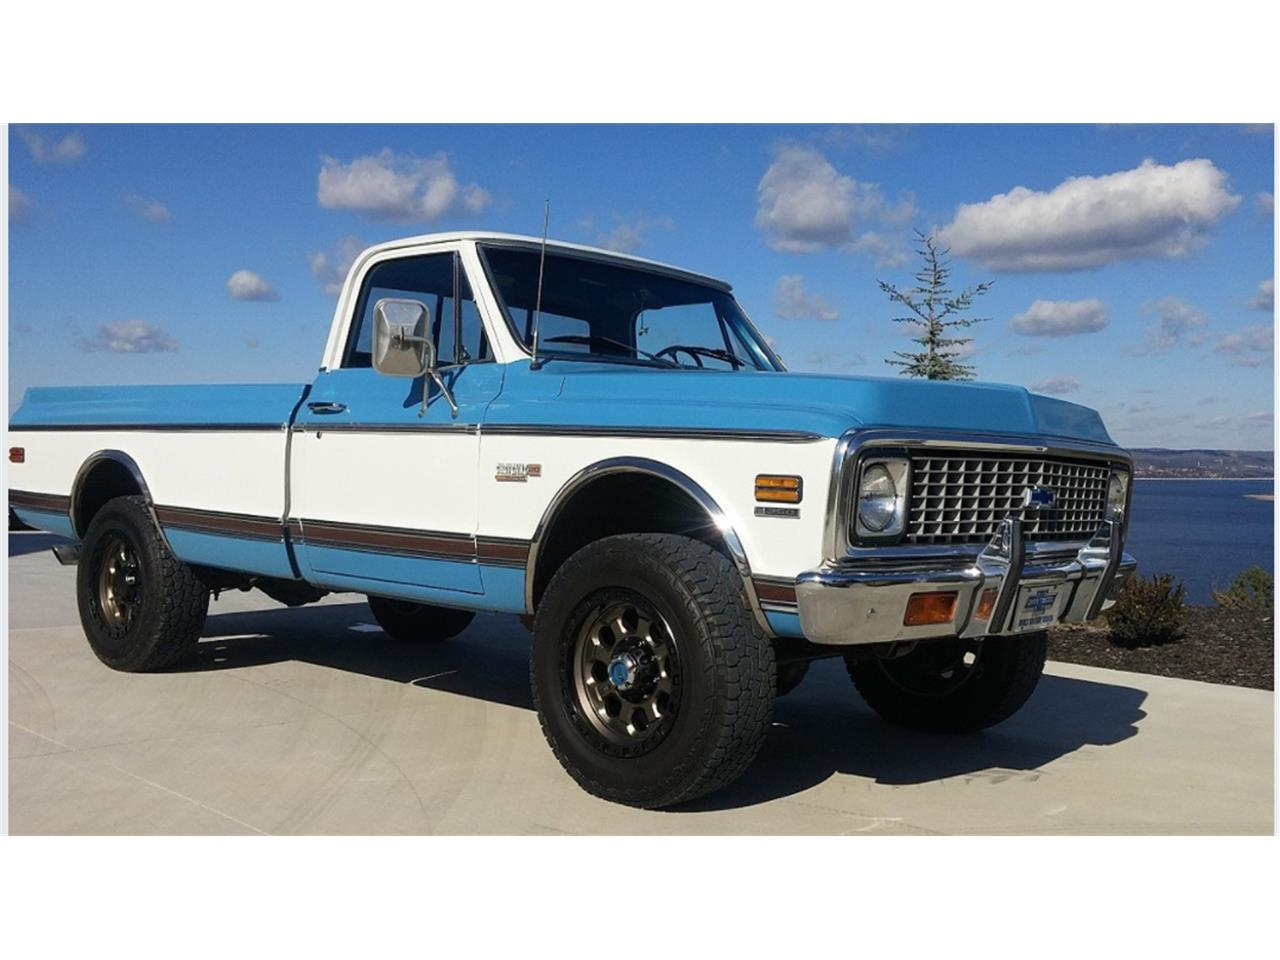 1972 Chevrolet Cheyenne For Sale Cc 980712 1966 Chevy Super 4x4 Large Picture Of 72 L0q0